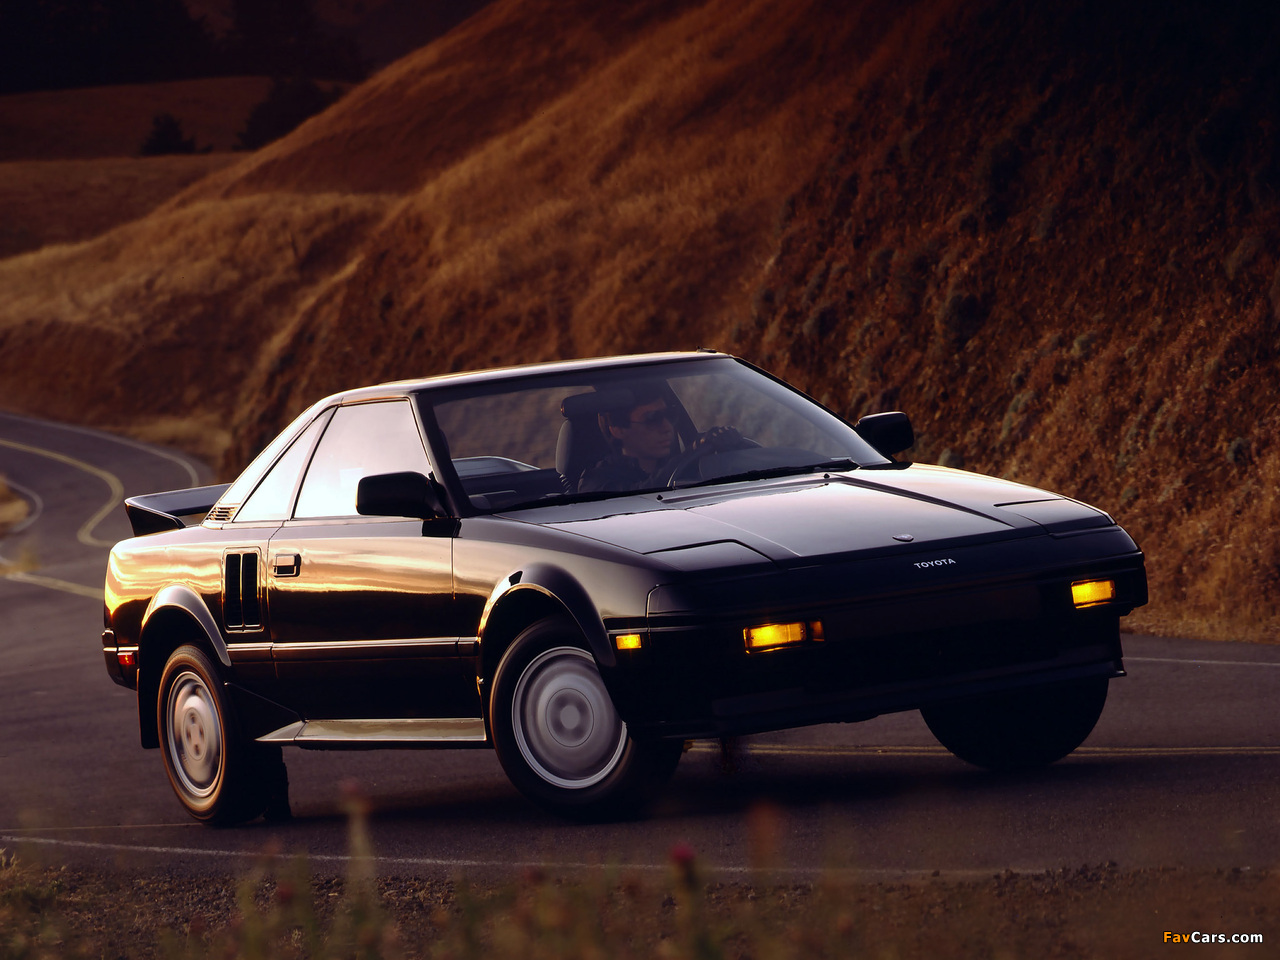 Toyota Mr2 Us Spec Aw11 1985 89 Wallpapers 1280x960